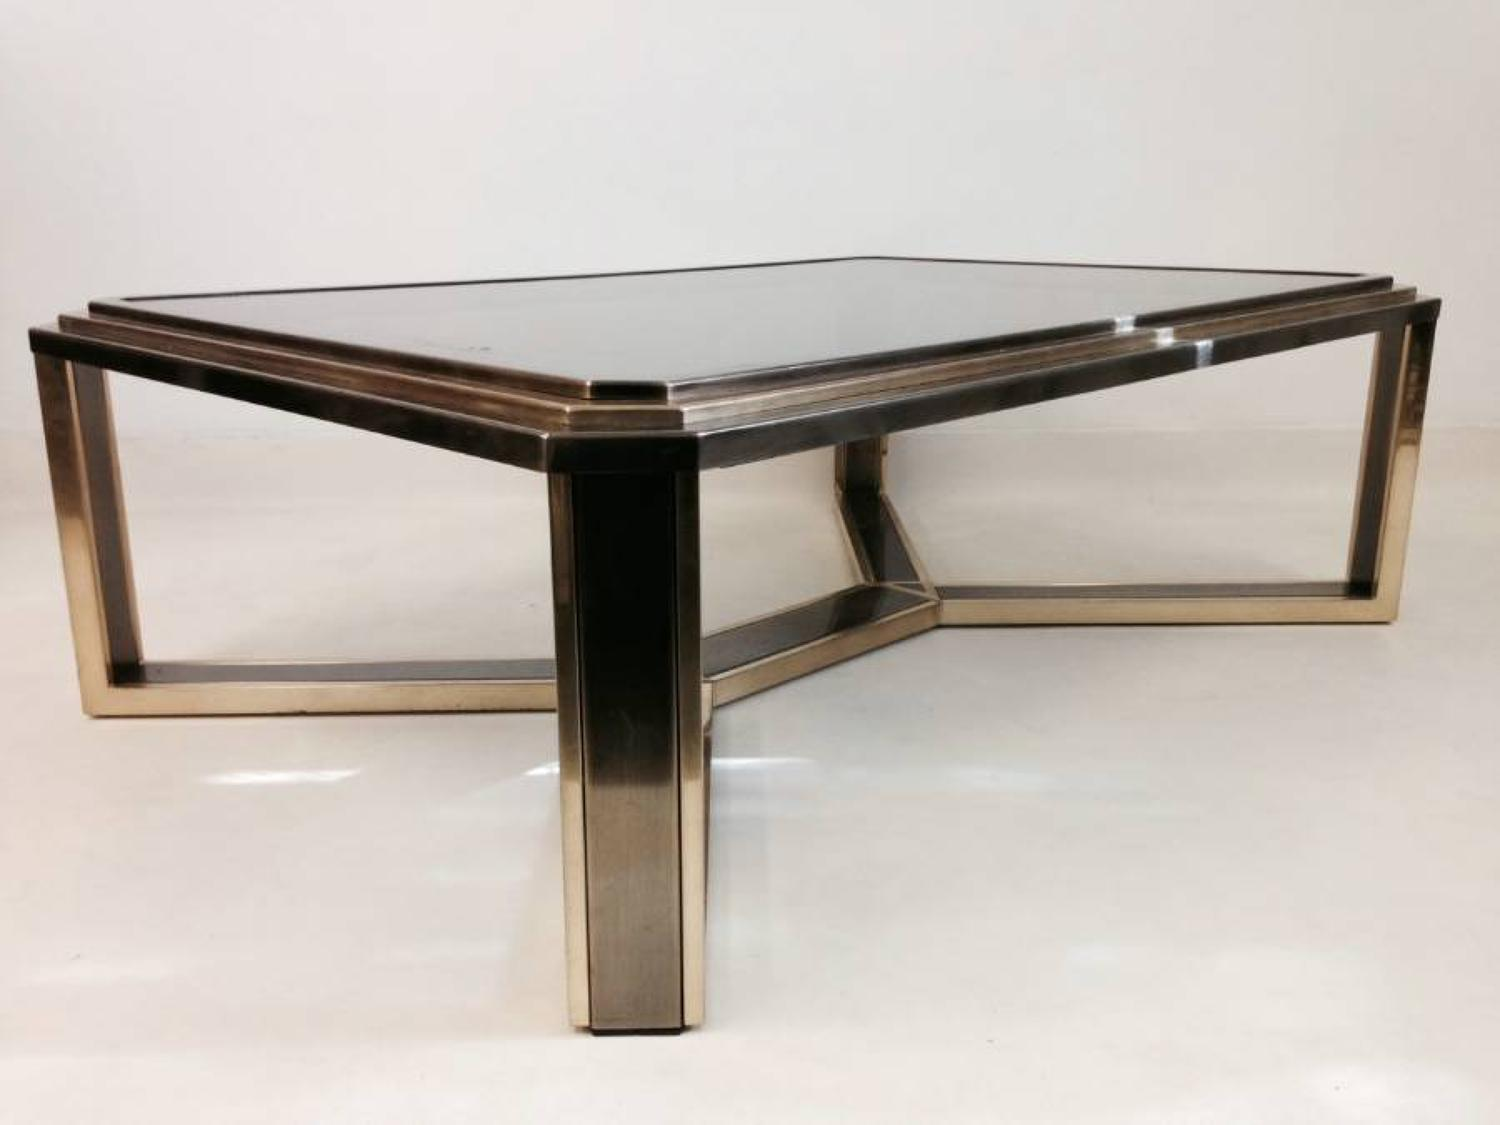 Brass and nickel-chrome coffee table